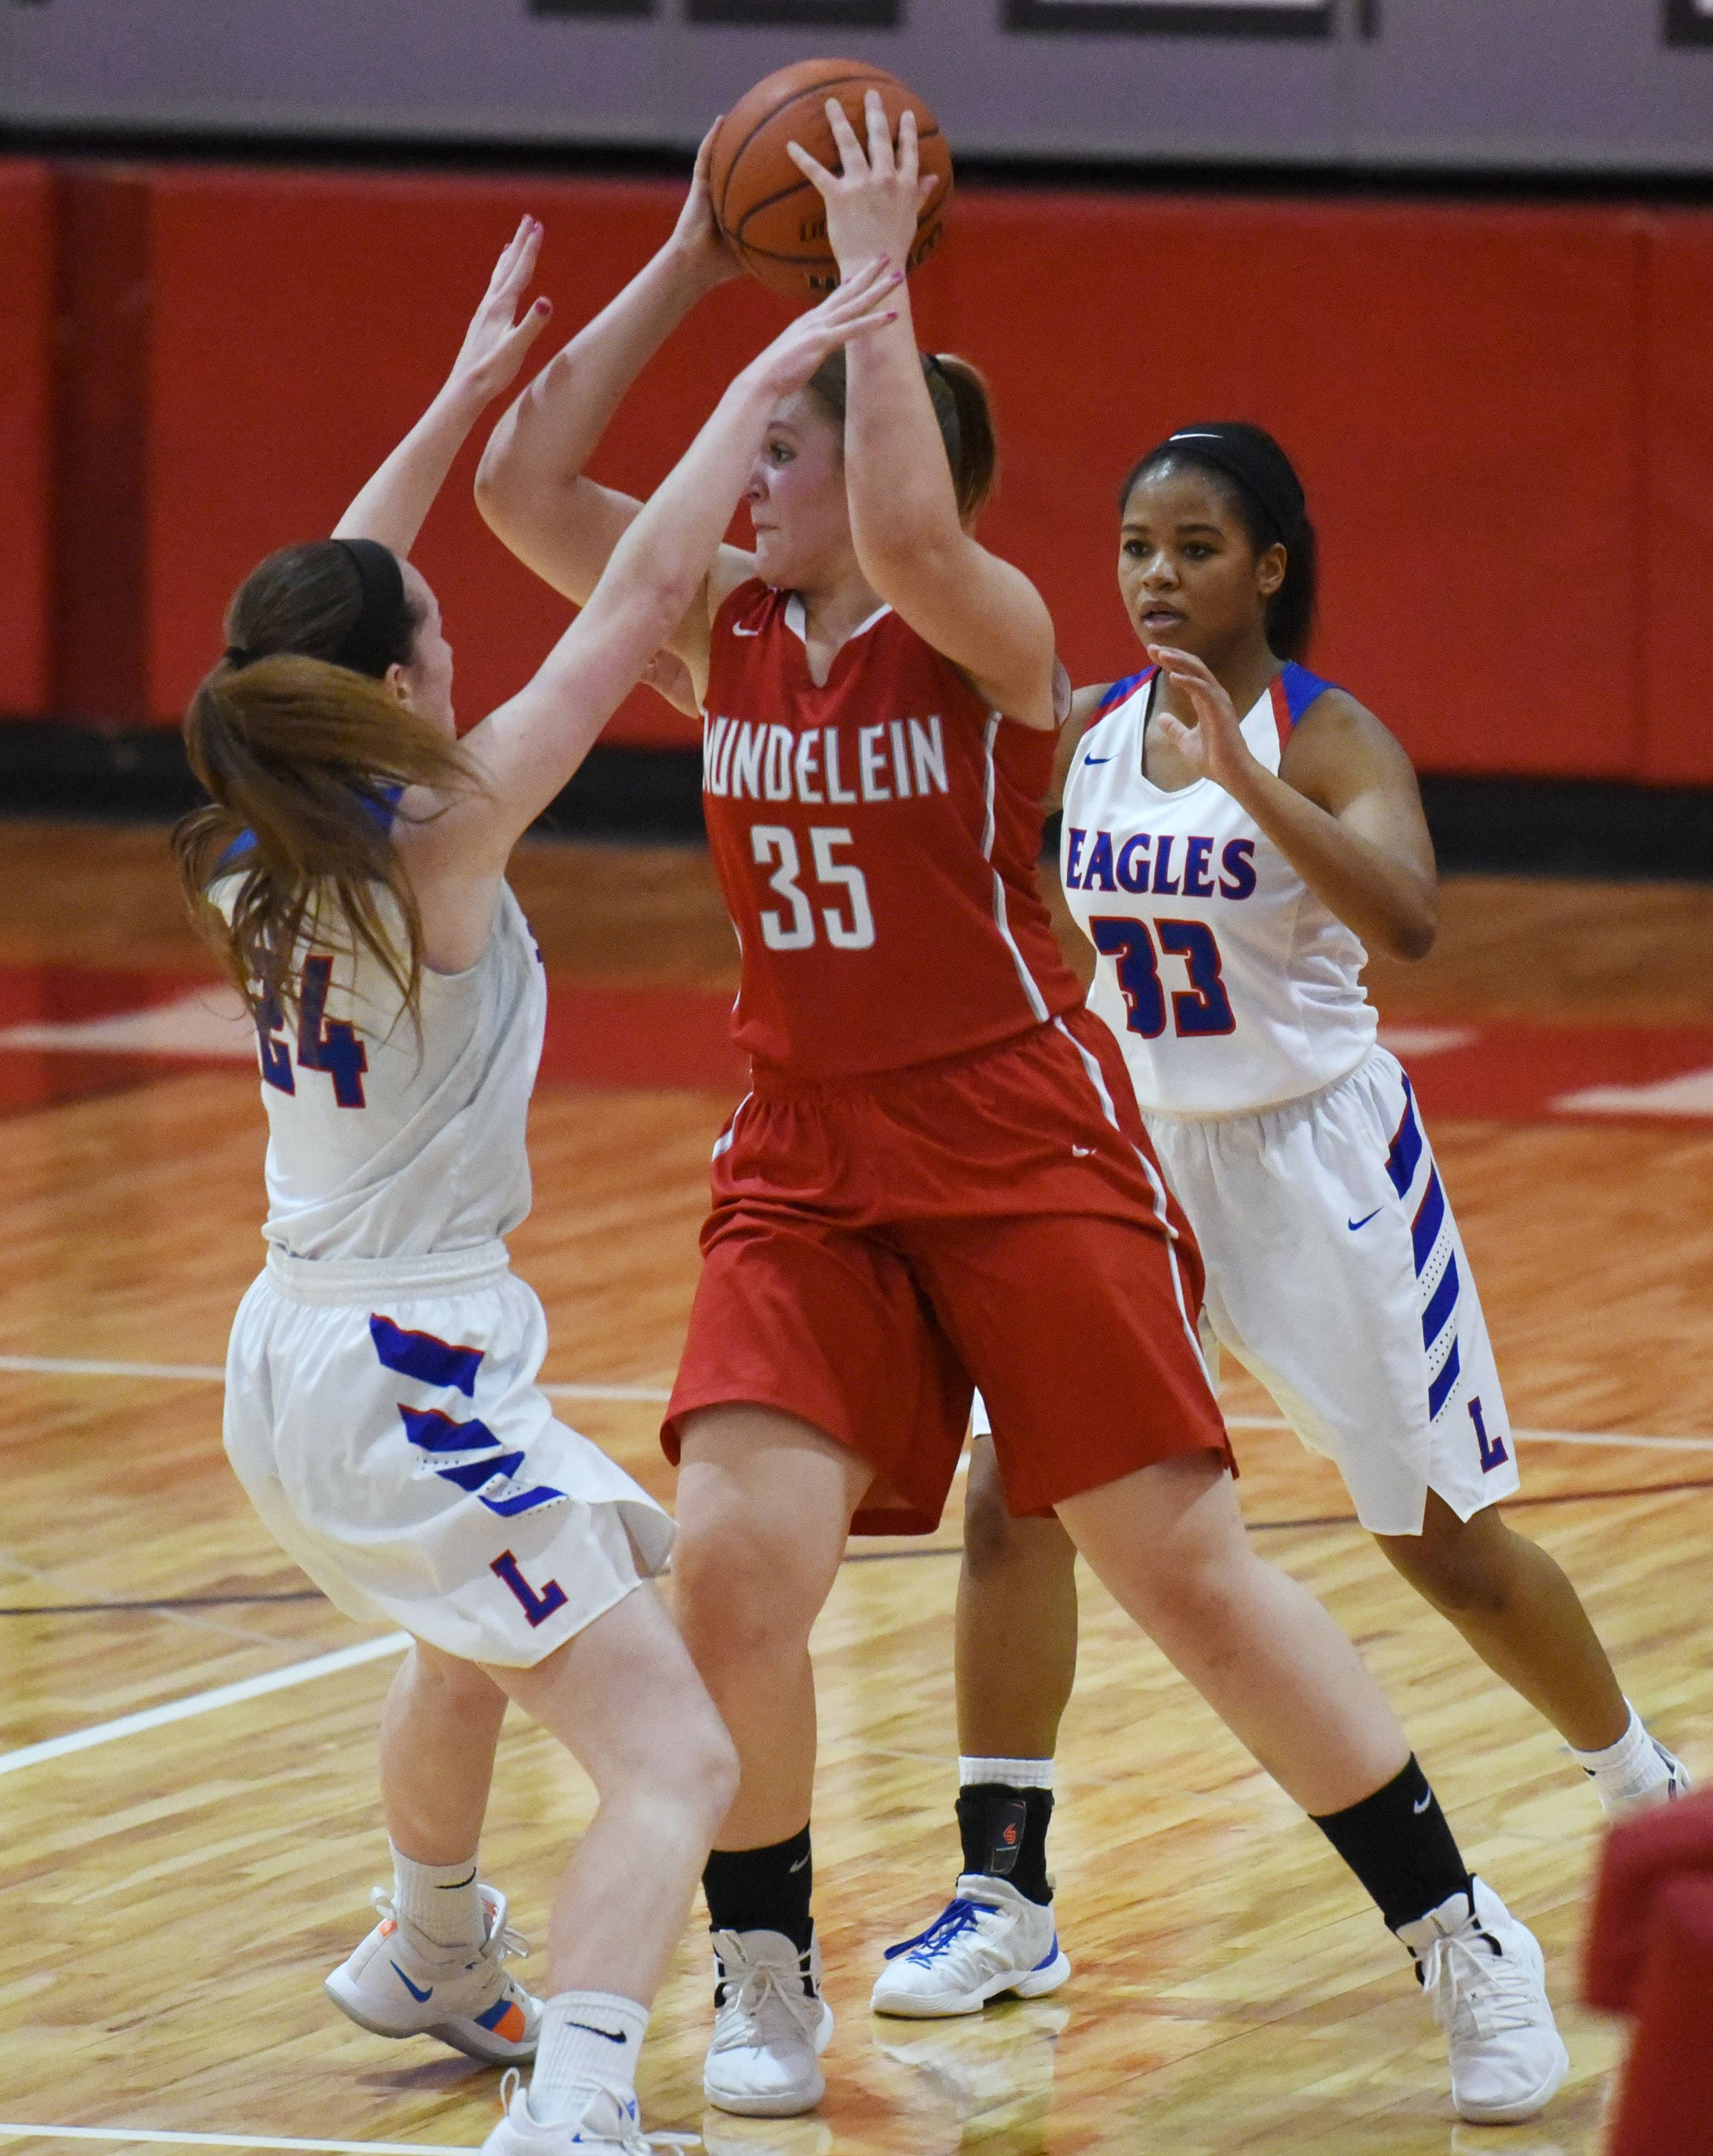 Mundelein's Gerda Boreika (35) is pressured by Lakes' Taylor Lehman (24) and Brittany Washington during Monday's girls regional basketball game in Mundelein.